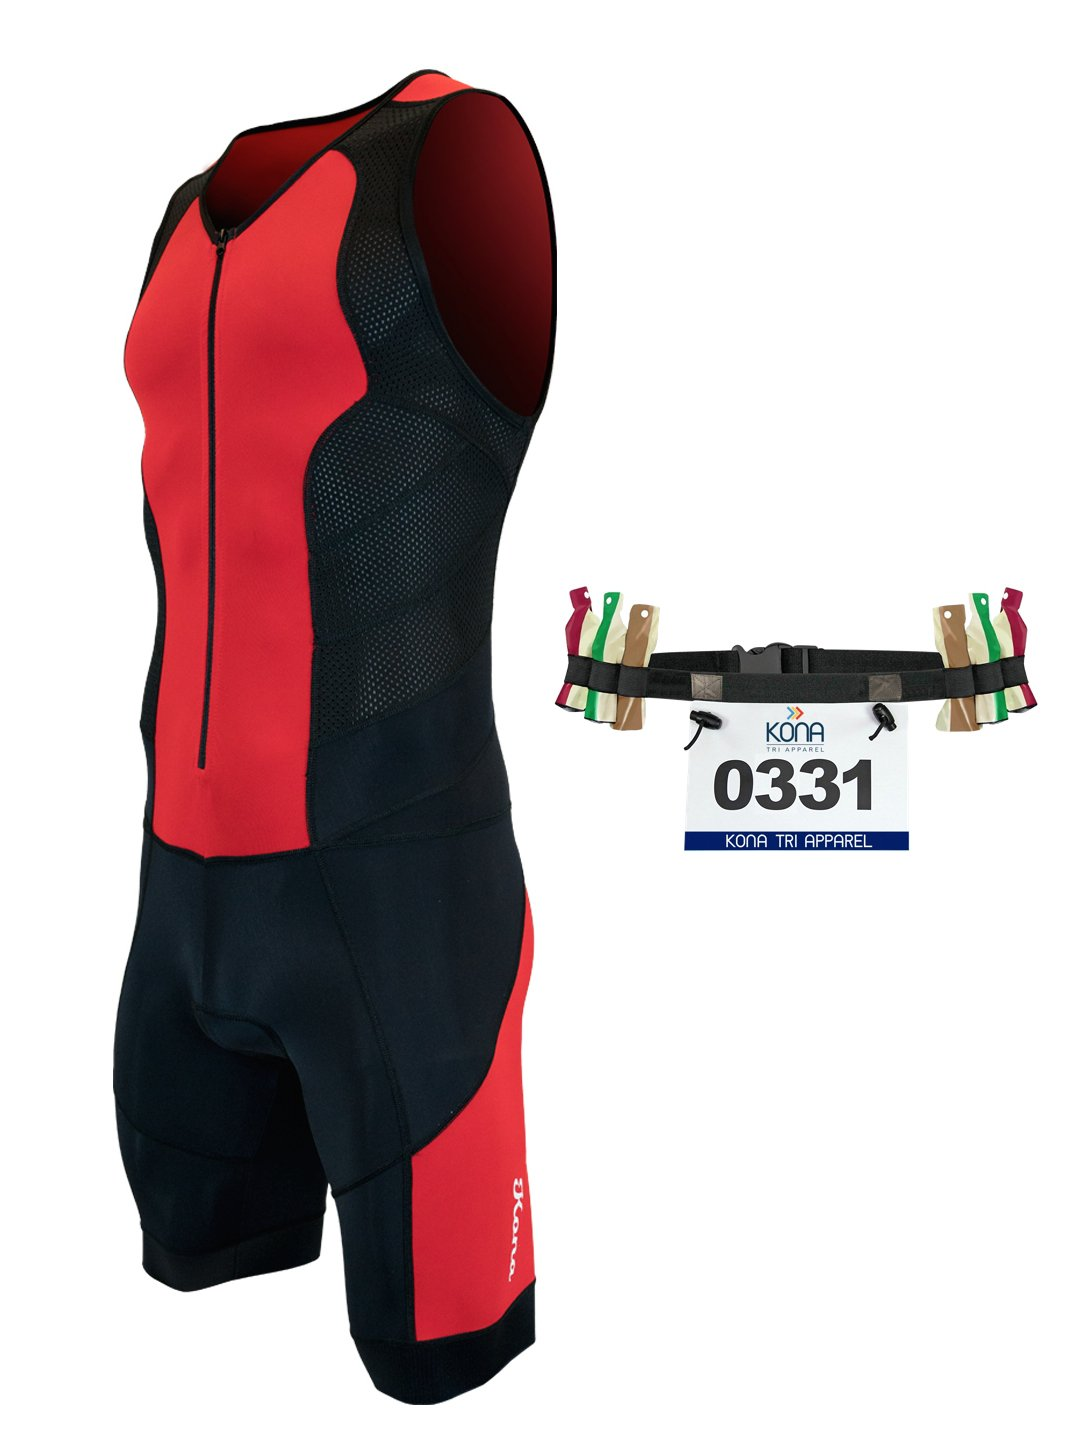 Kona II Men's Triathlon Suit - Sleeveless Speedsuit Skinsuit Trisuit with Storage Pocket and Bonus Race Bib Belt (Red/Black, Small)